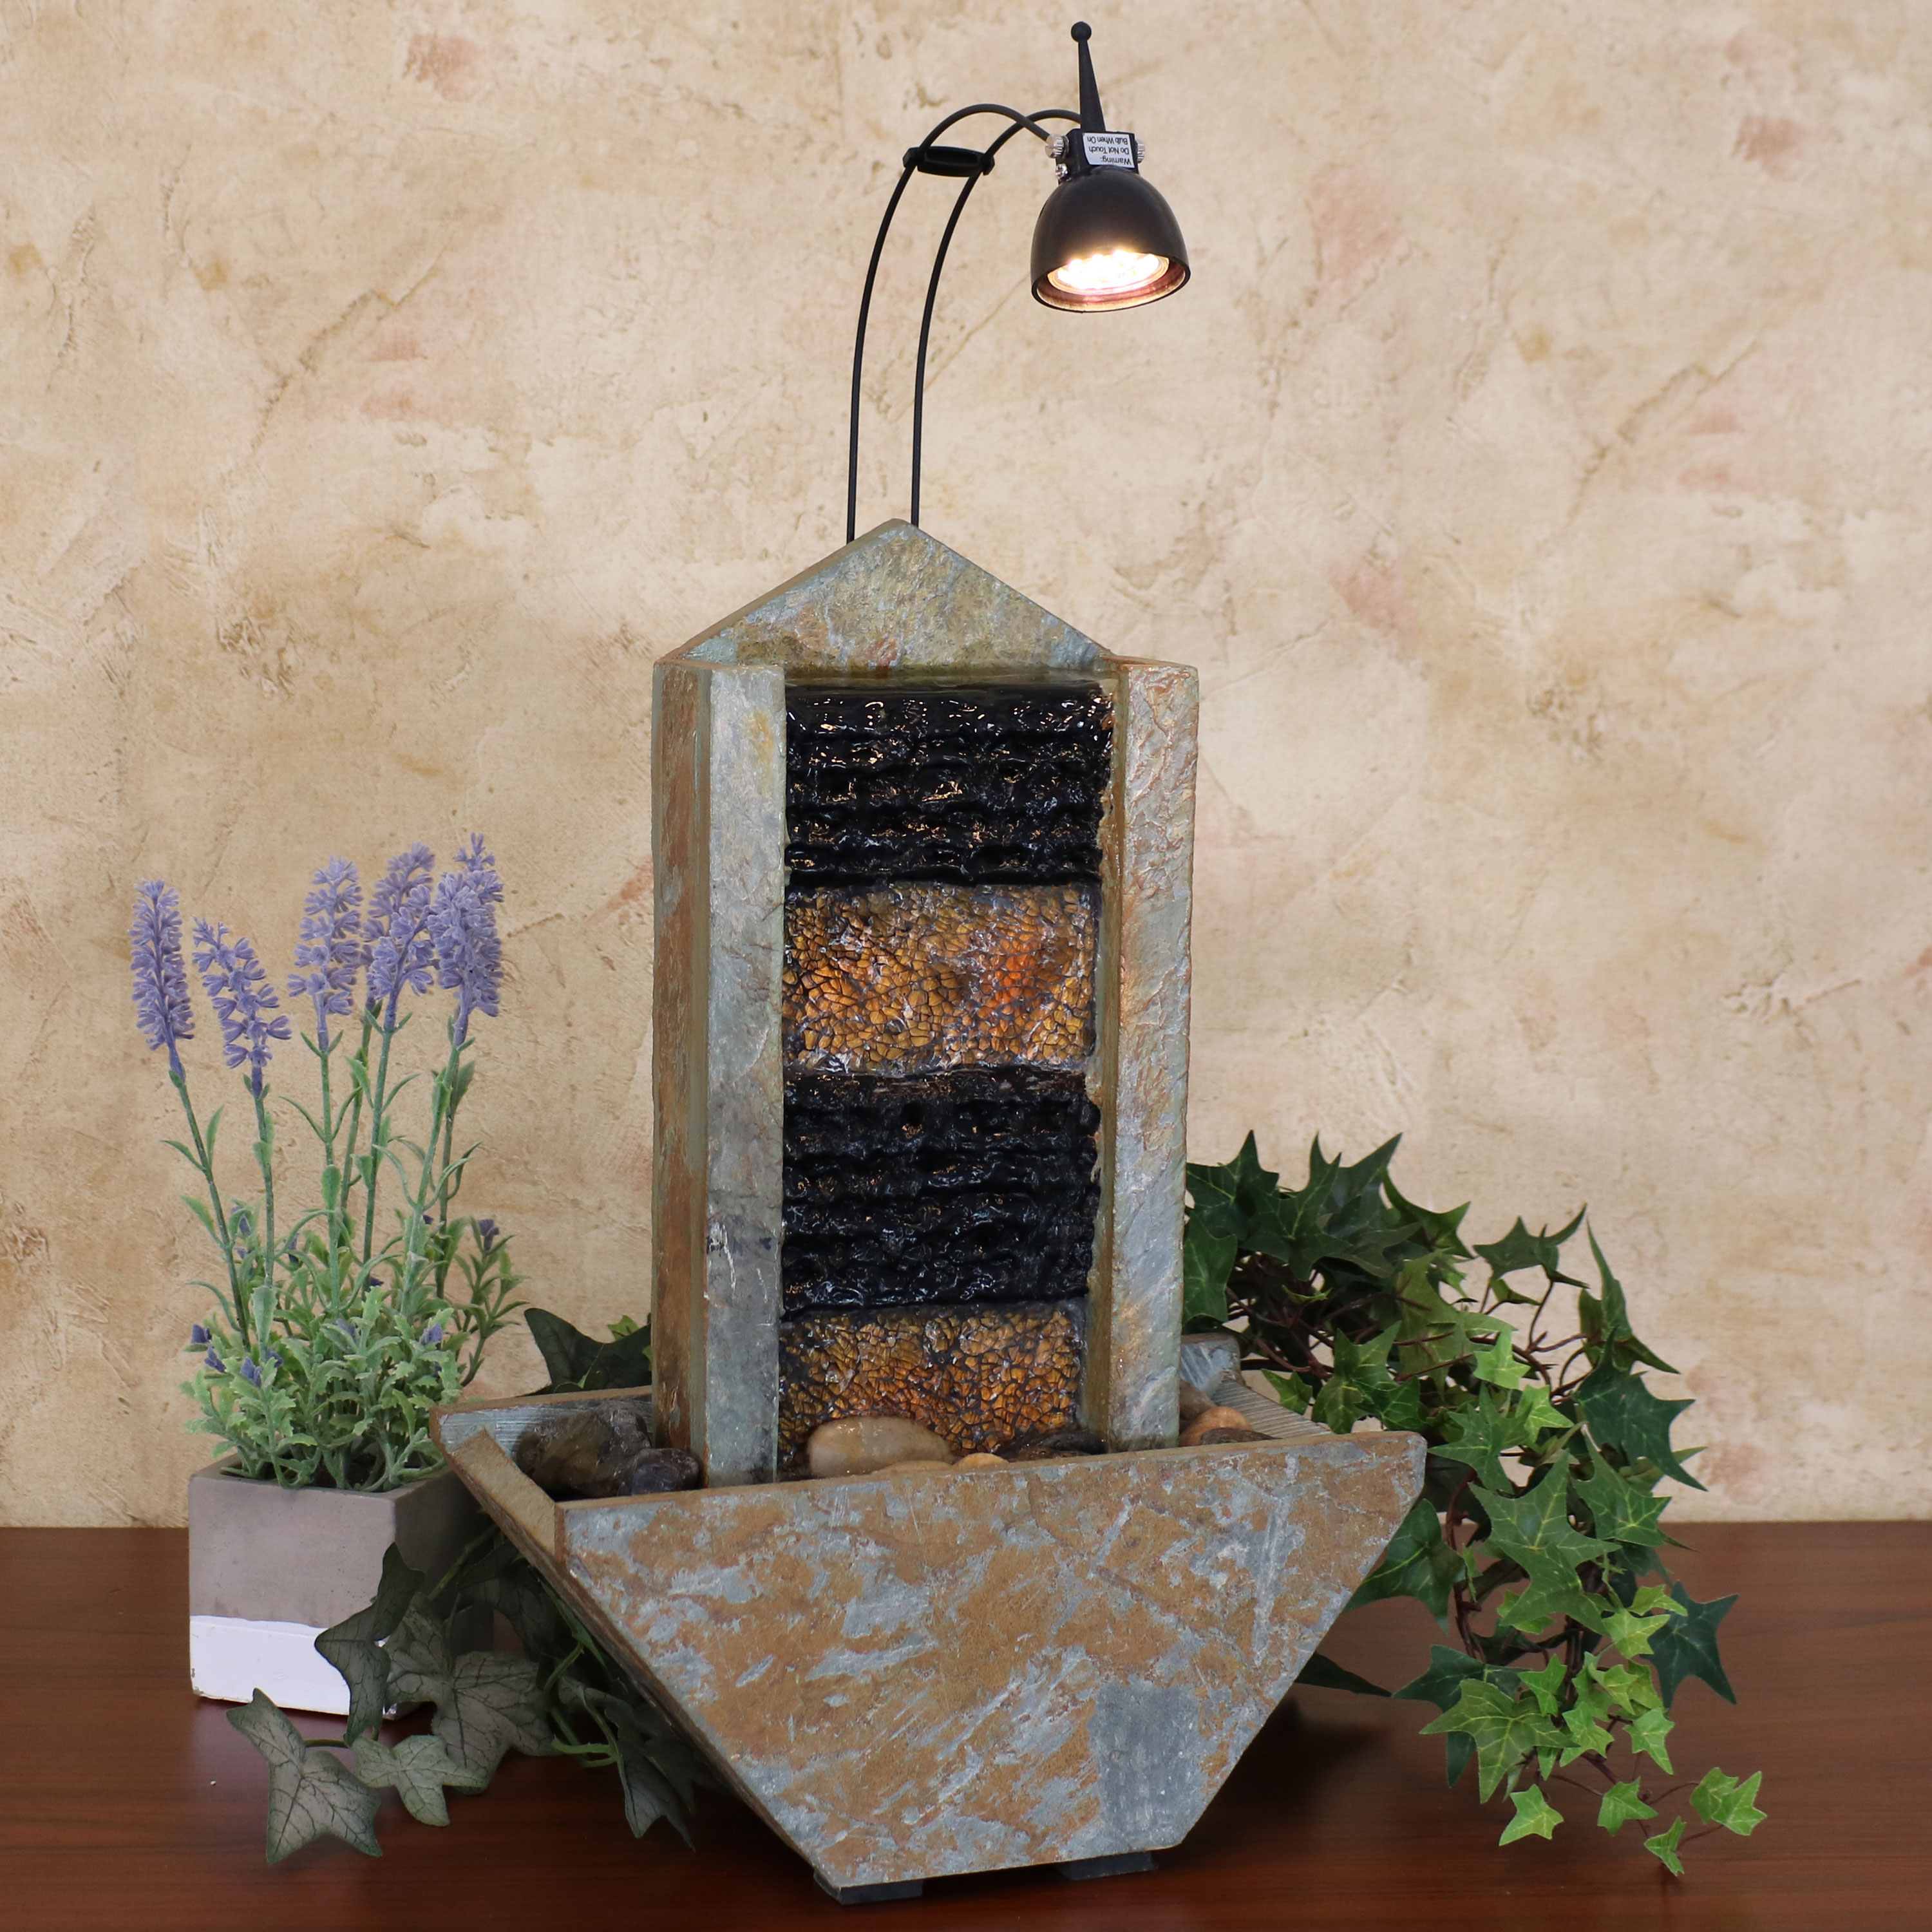 Sunnydaze Towering Tabletop Water Fountain with Spotlight, Indoor Use, Slate, 16-Inch